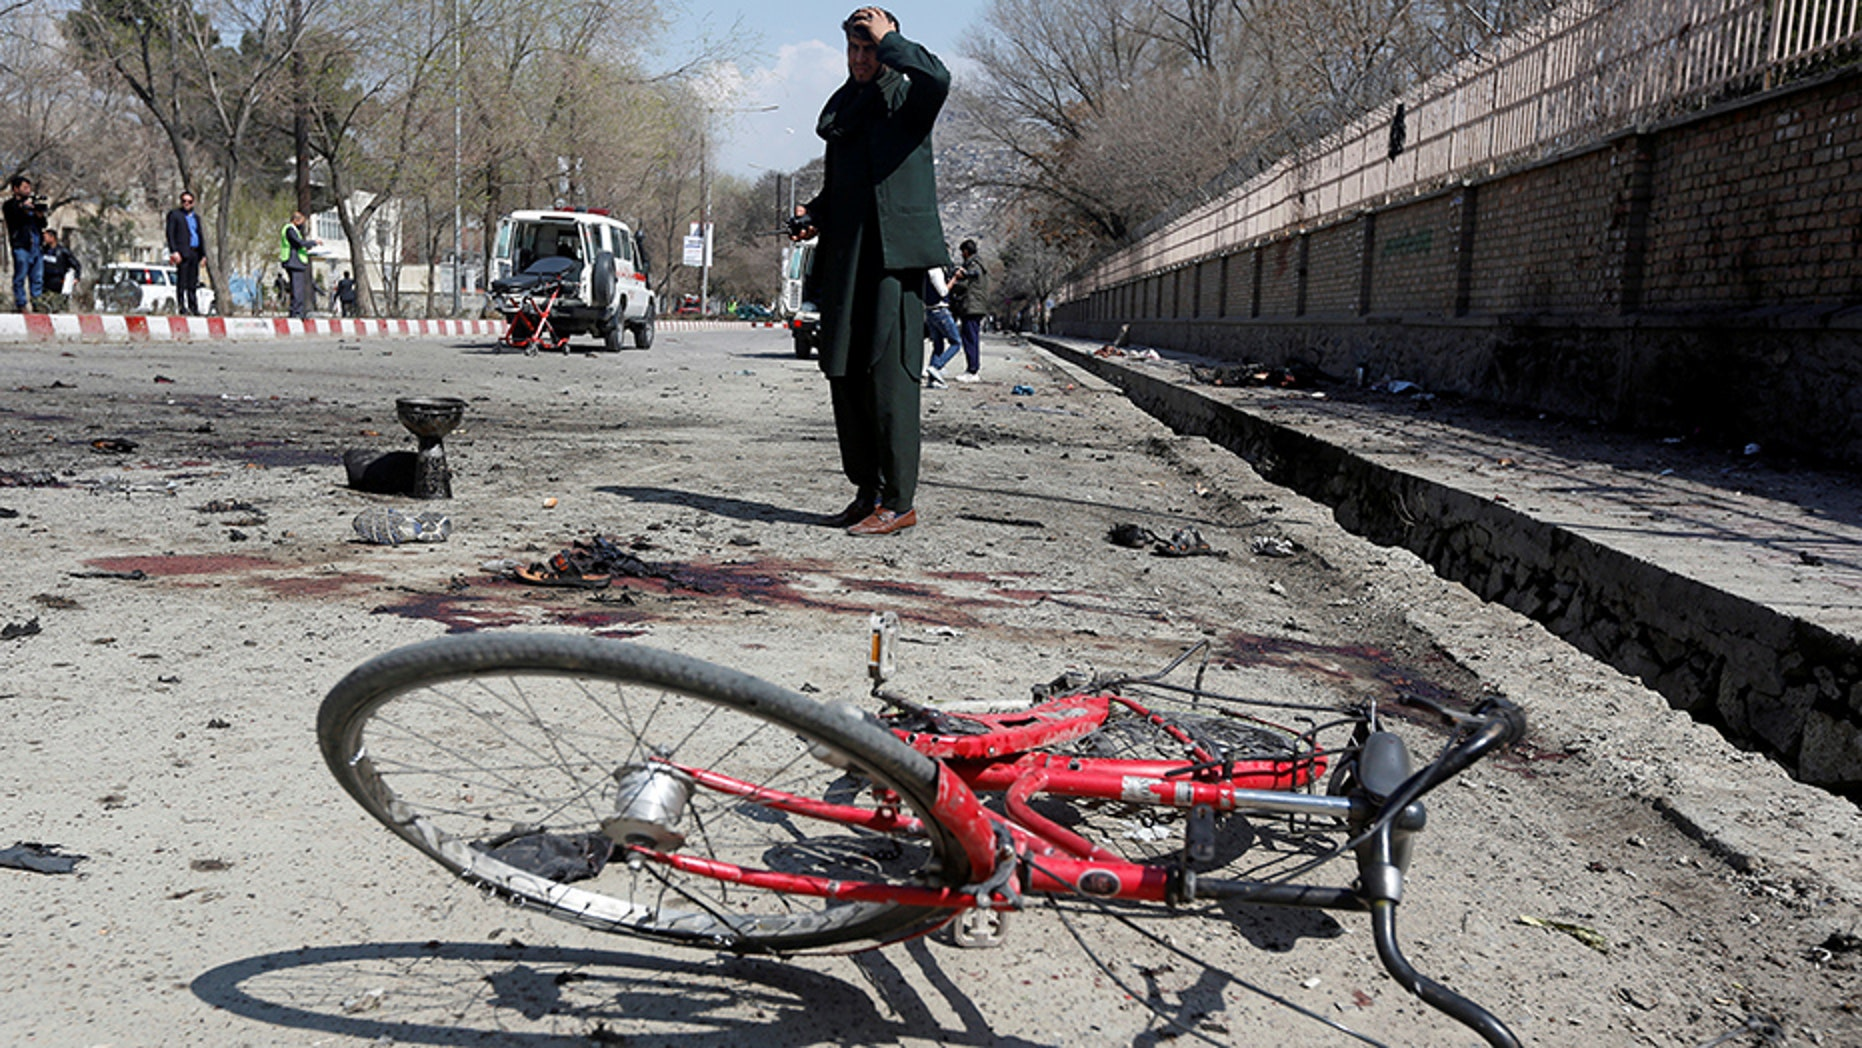 An Afghan man inspects the site of a suicide attack in Kabul, Afghanistan March 21, 2018. REUTERS/Omar Sobhani - RC1162C40DF0